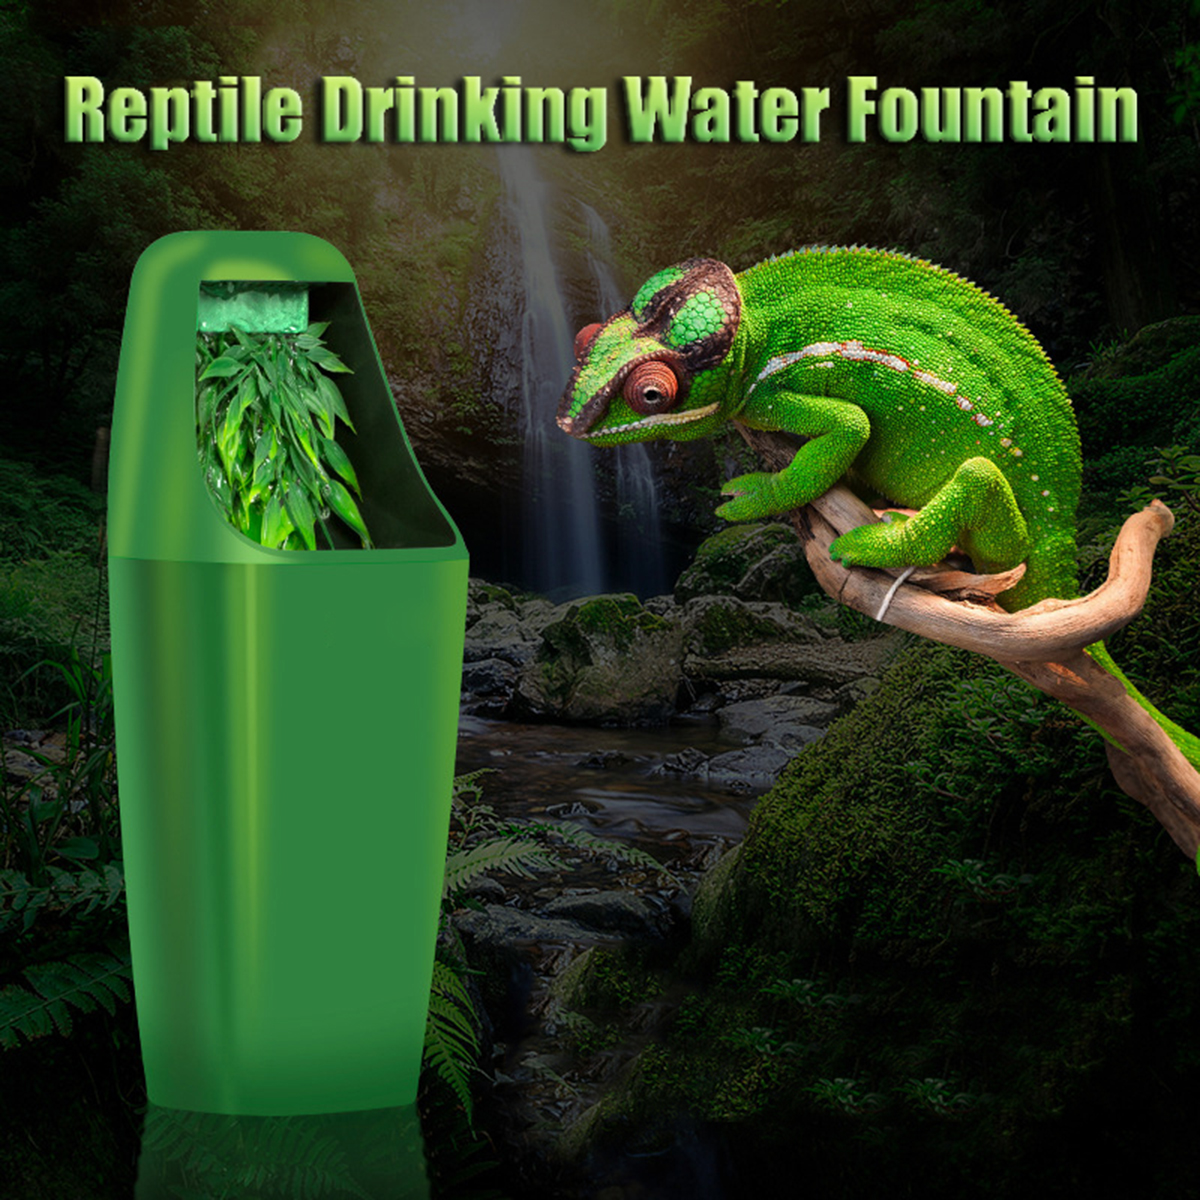 Reptile Drinking Water Filter Fountain Feeding Chameleon Lizard Dispenser Terrarium Reptiles Feeding Supplies 220-240v Ac